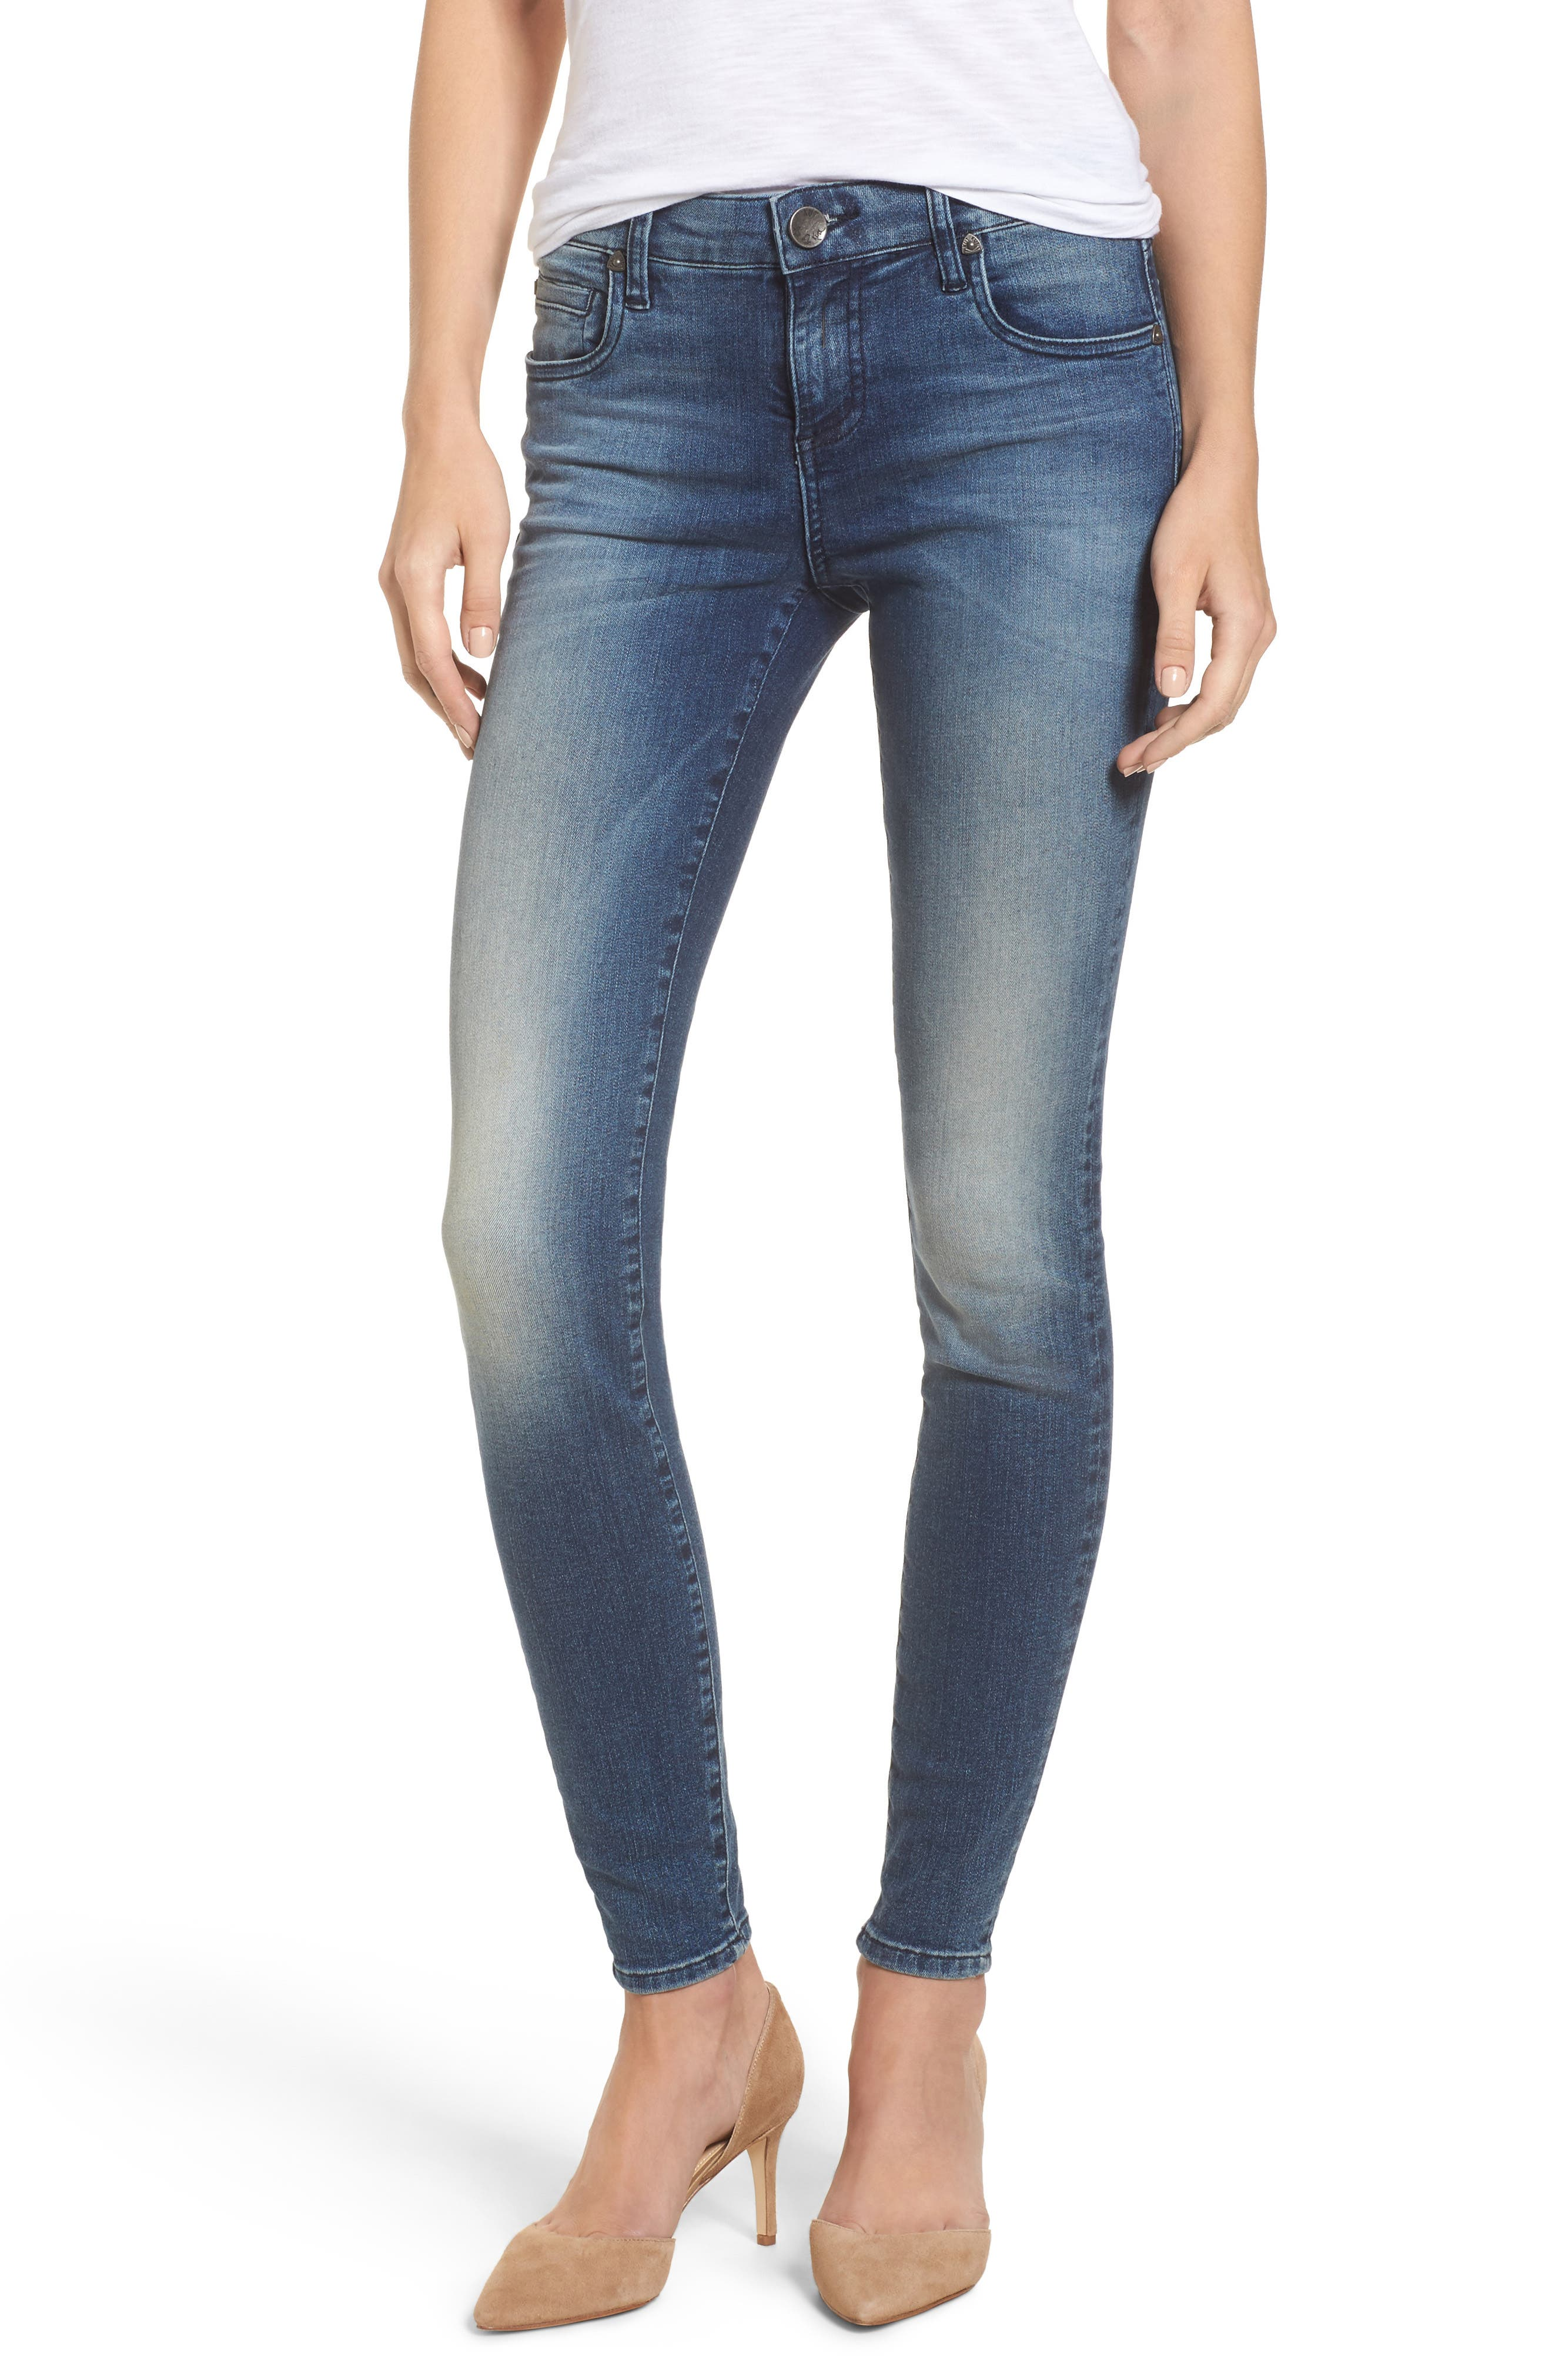 KUT from the Kloth Donna High Waist Jeans (Cheered)